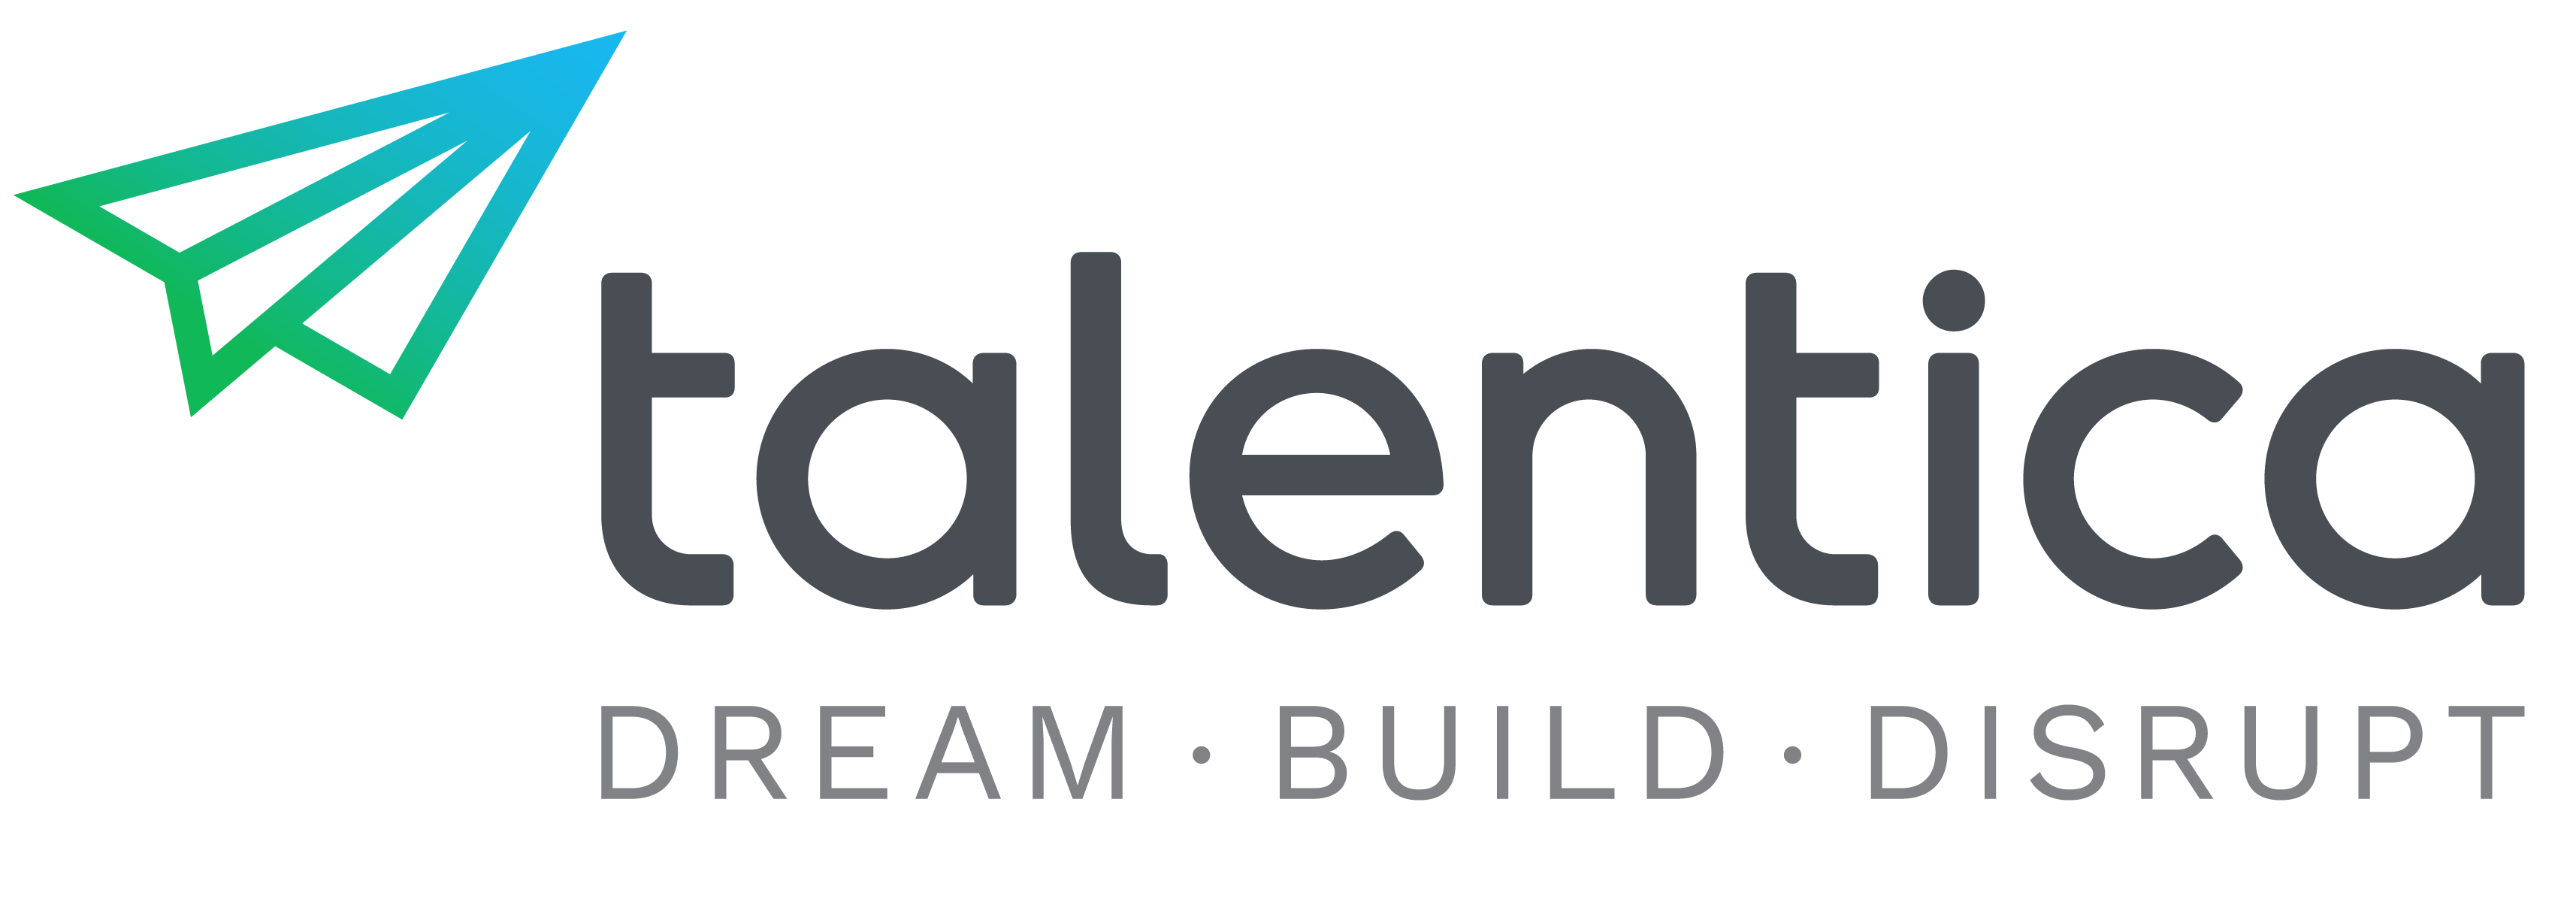 Talentica's Competitors, Revenue, Number of Employees, Funding, Acquisitions & News - Owler Company Profile